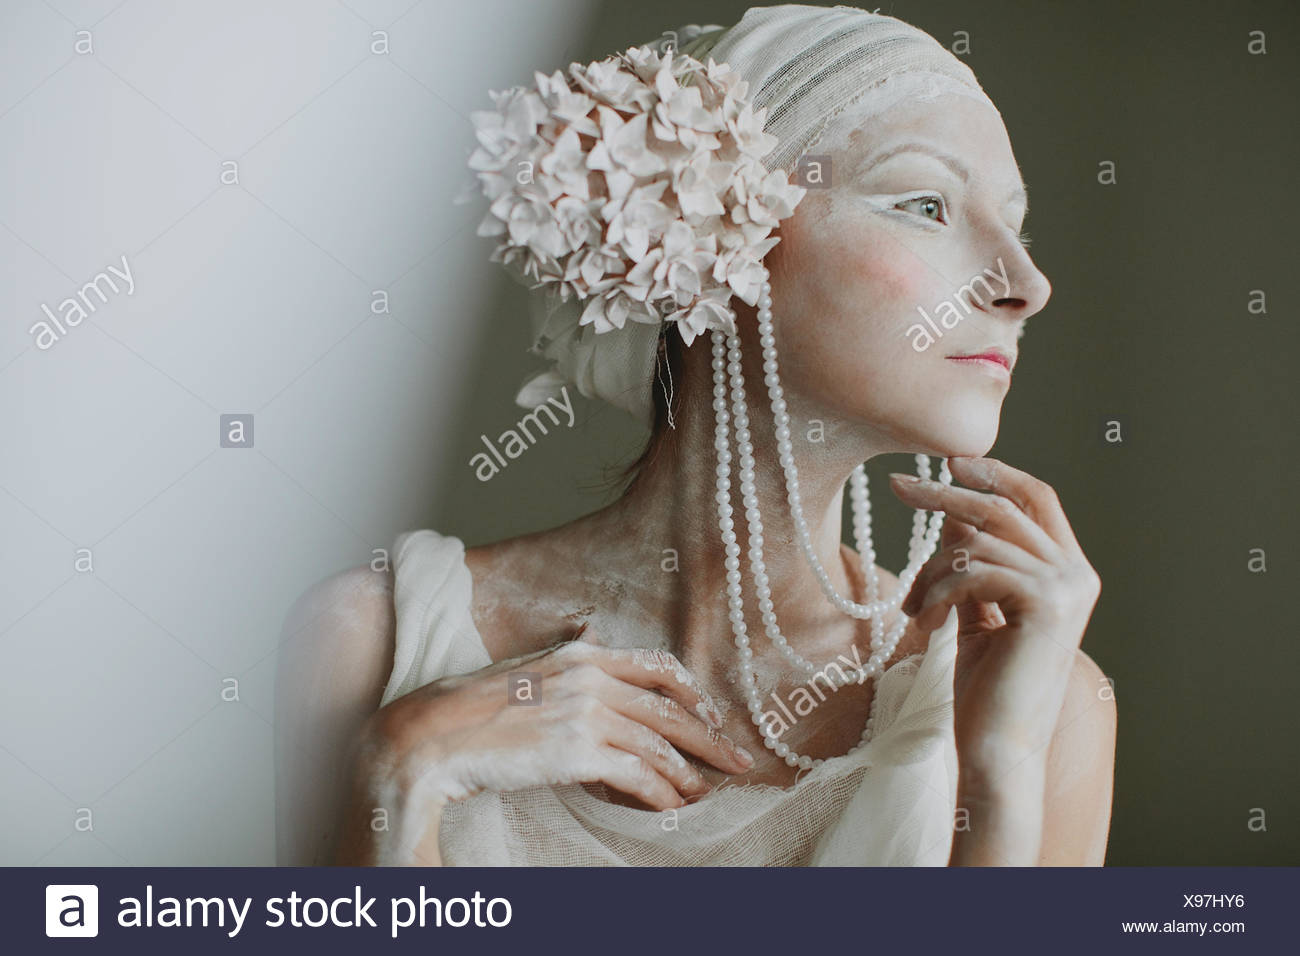 Portrait of young woman wearing make up, greasepaint, beads, and ear decorations resembling inflorescence - Stock Image